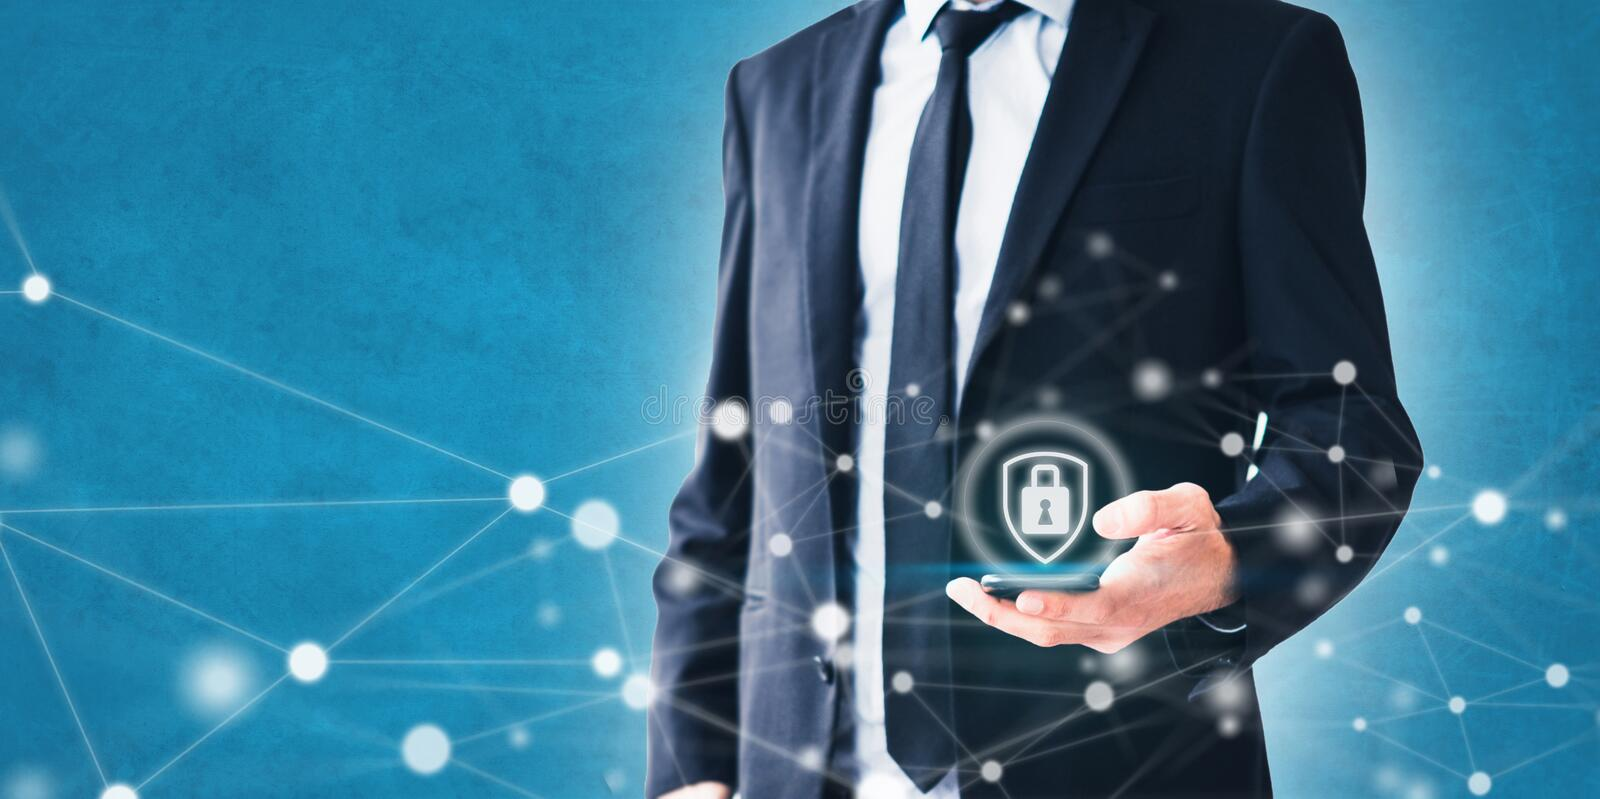 Mobile phone privacy concept -  businessman using smartphone with network illustration and security symbol royalty free stock images